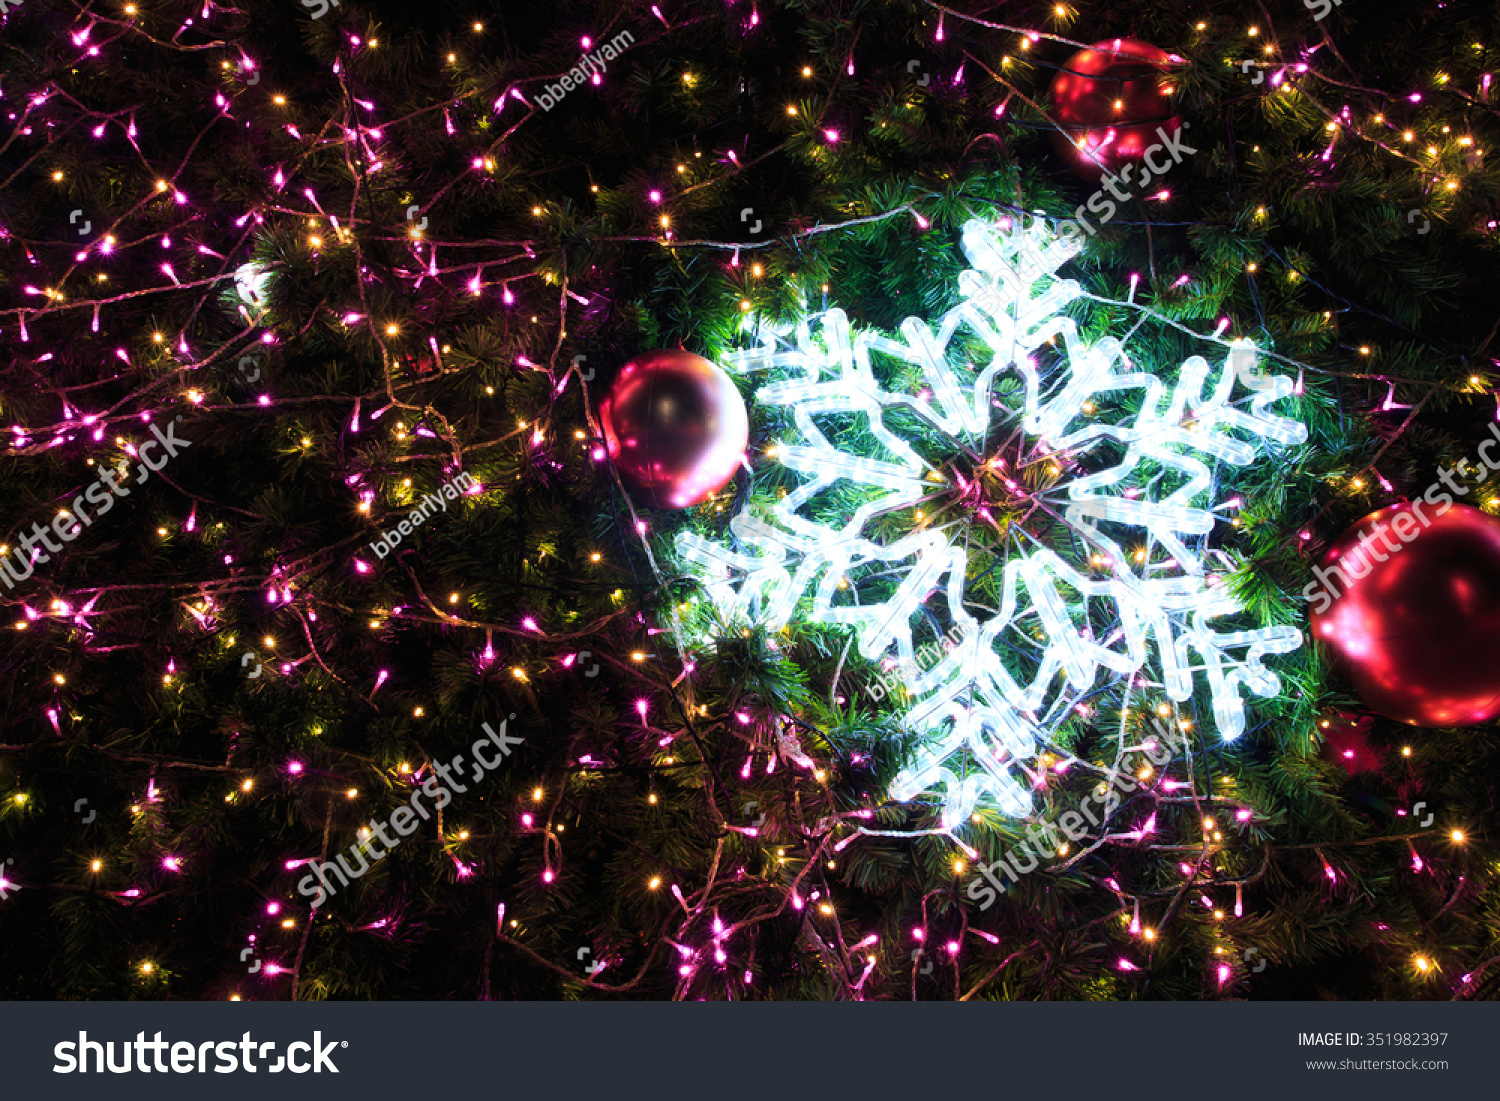 christmas day beautiful images